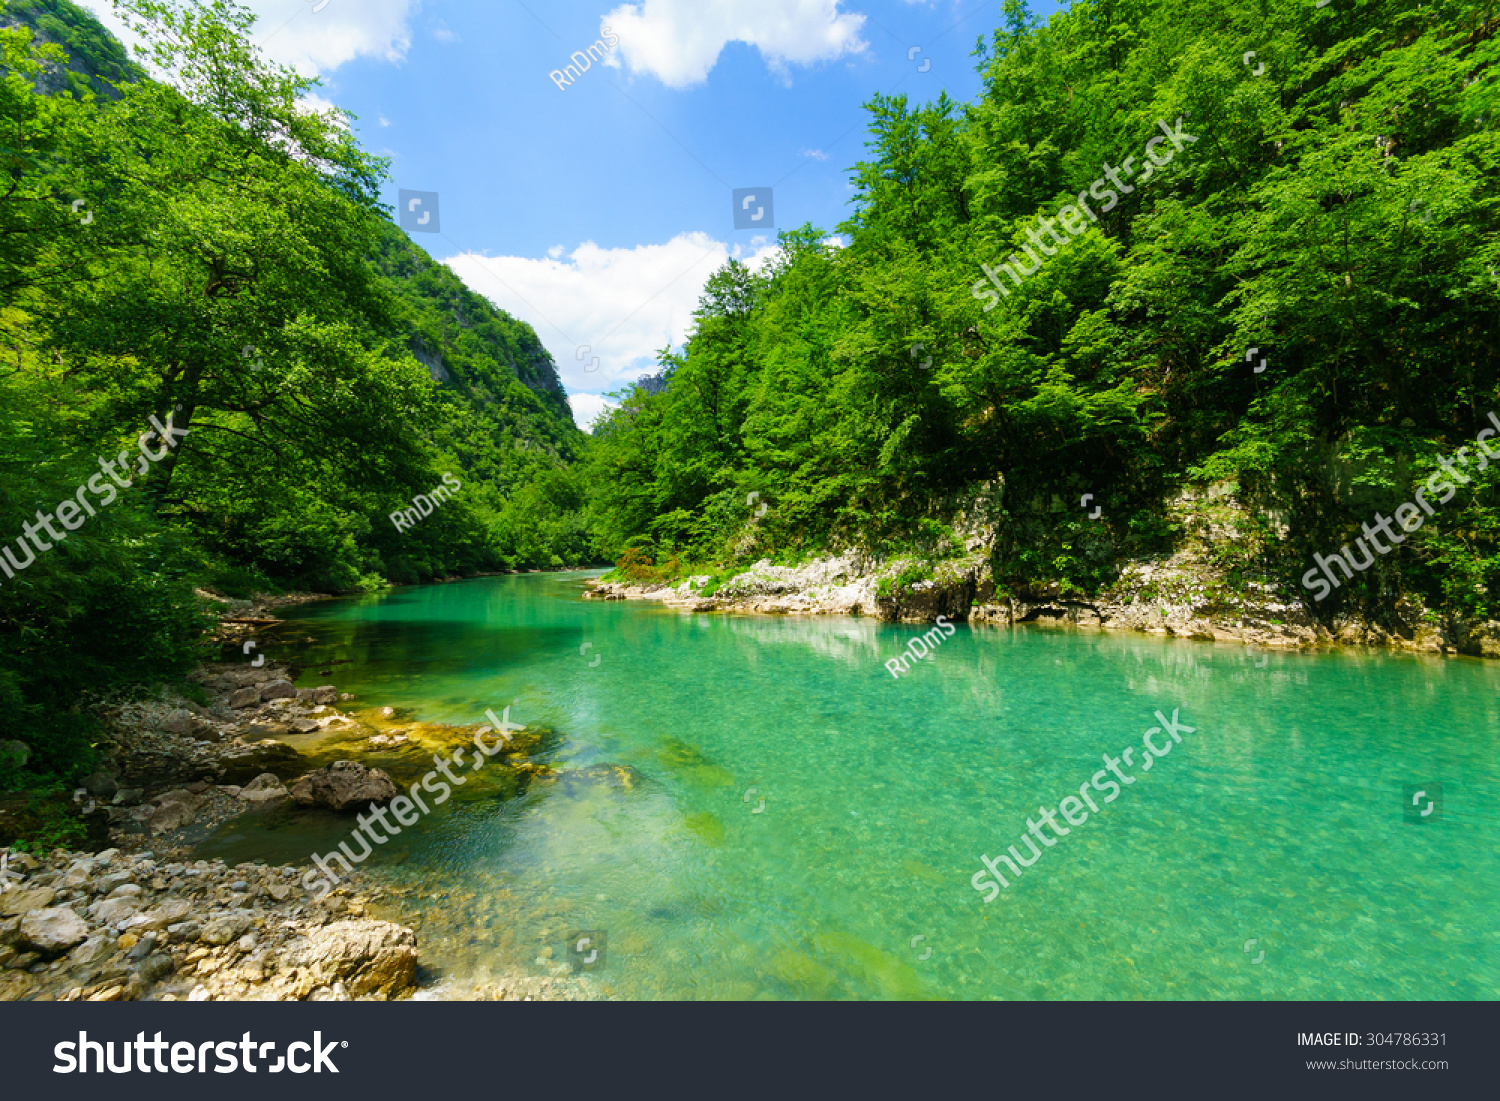 ... And Canyon, Northern Montenegro Stock Photo 304786331 : Shutterstock: www.shutterstock.com/pic-304786331/stock-photo-the-tara-river-and...